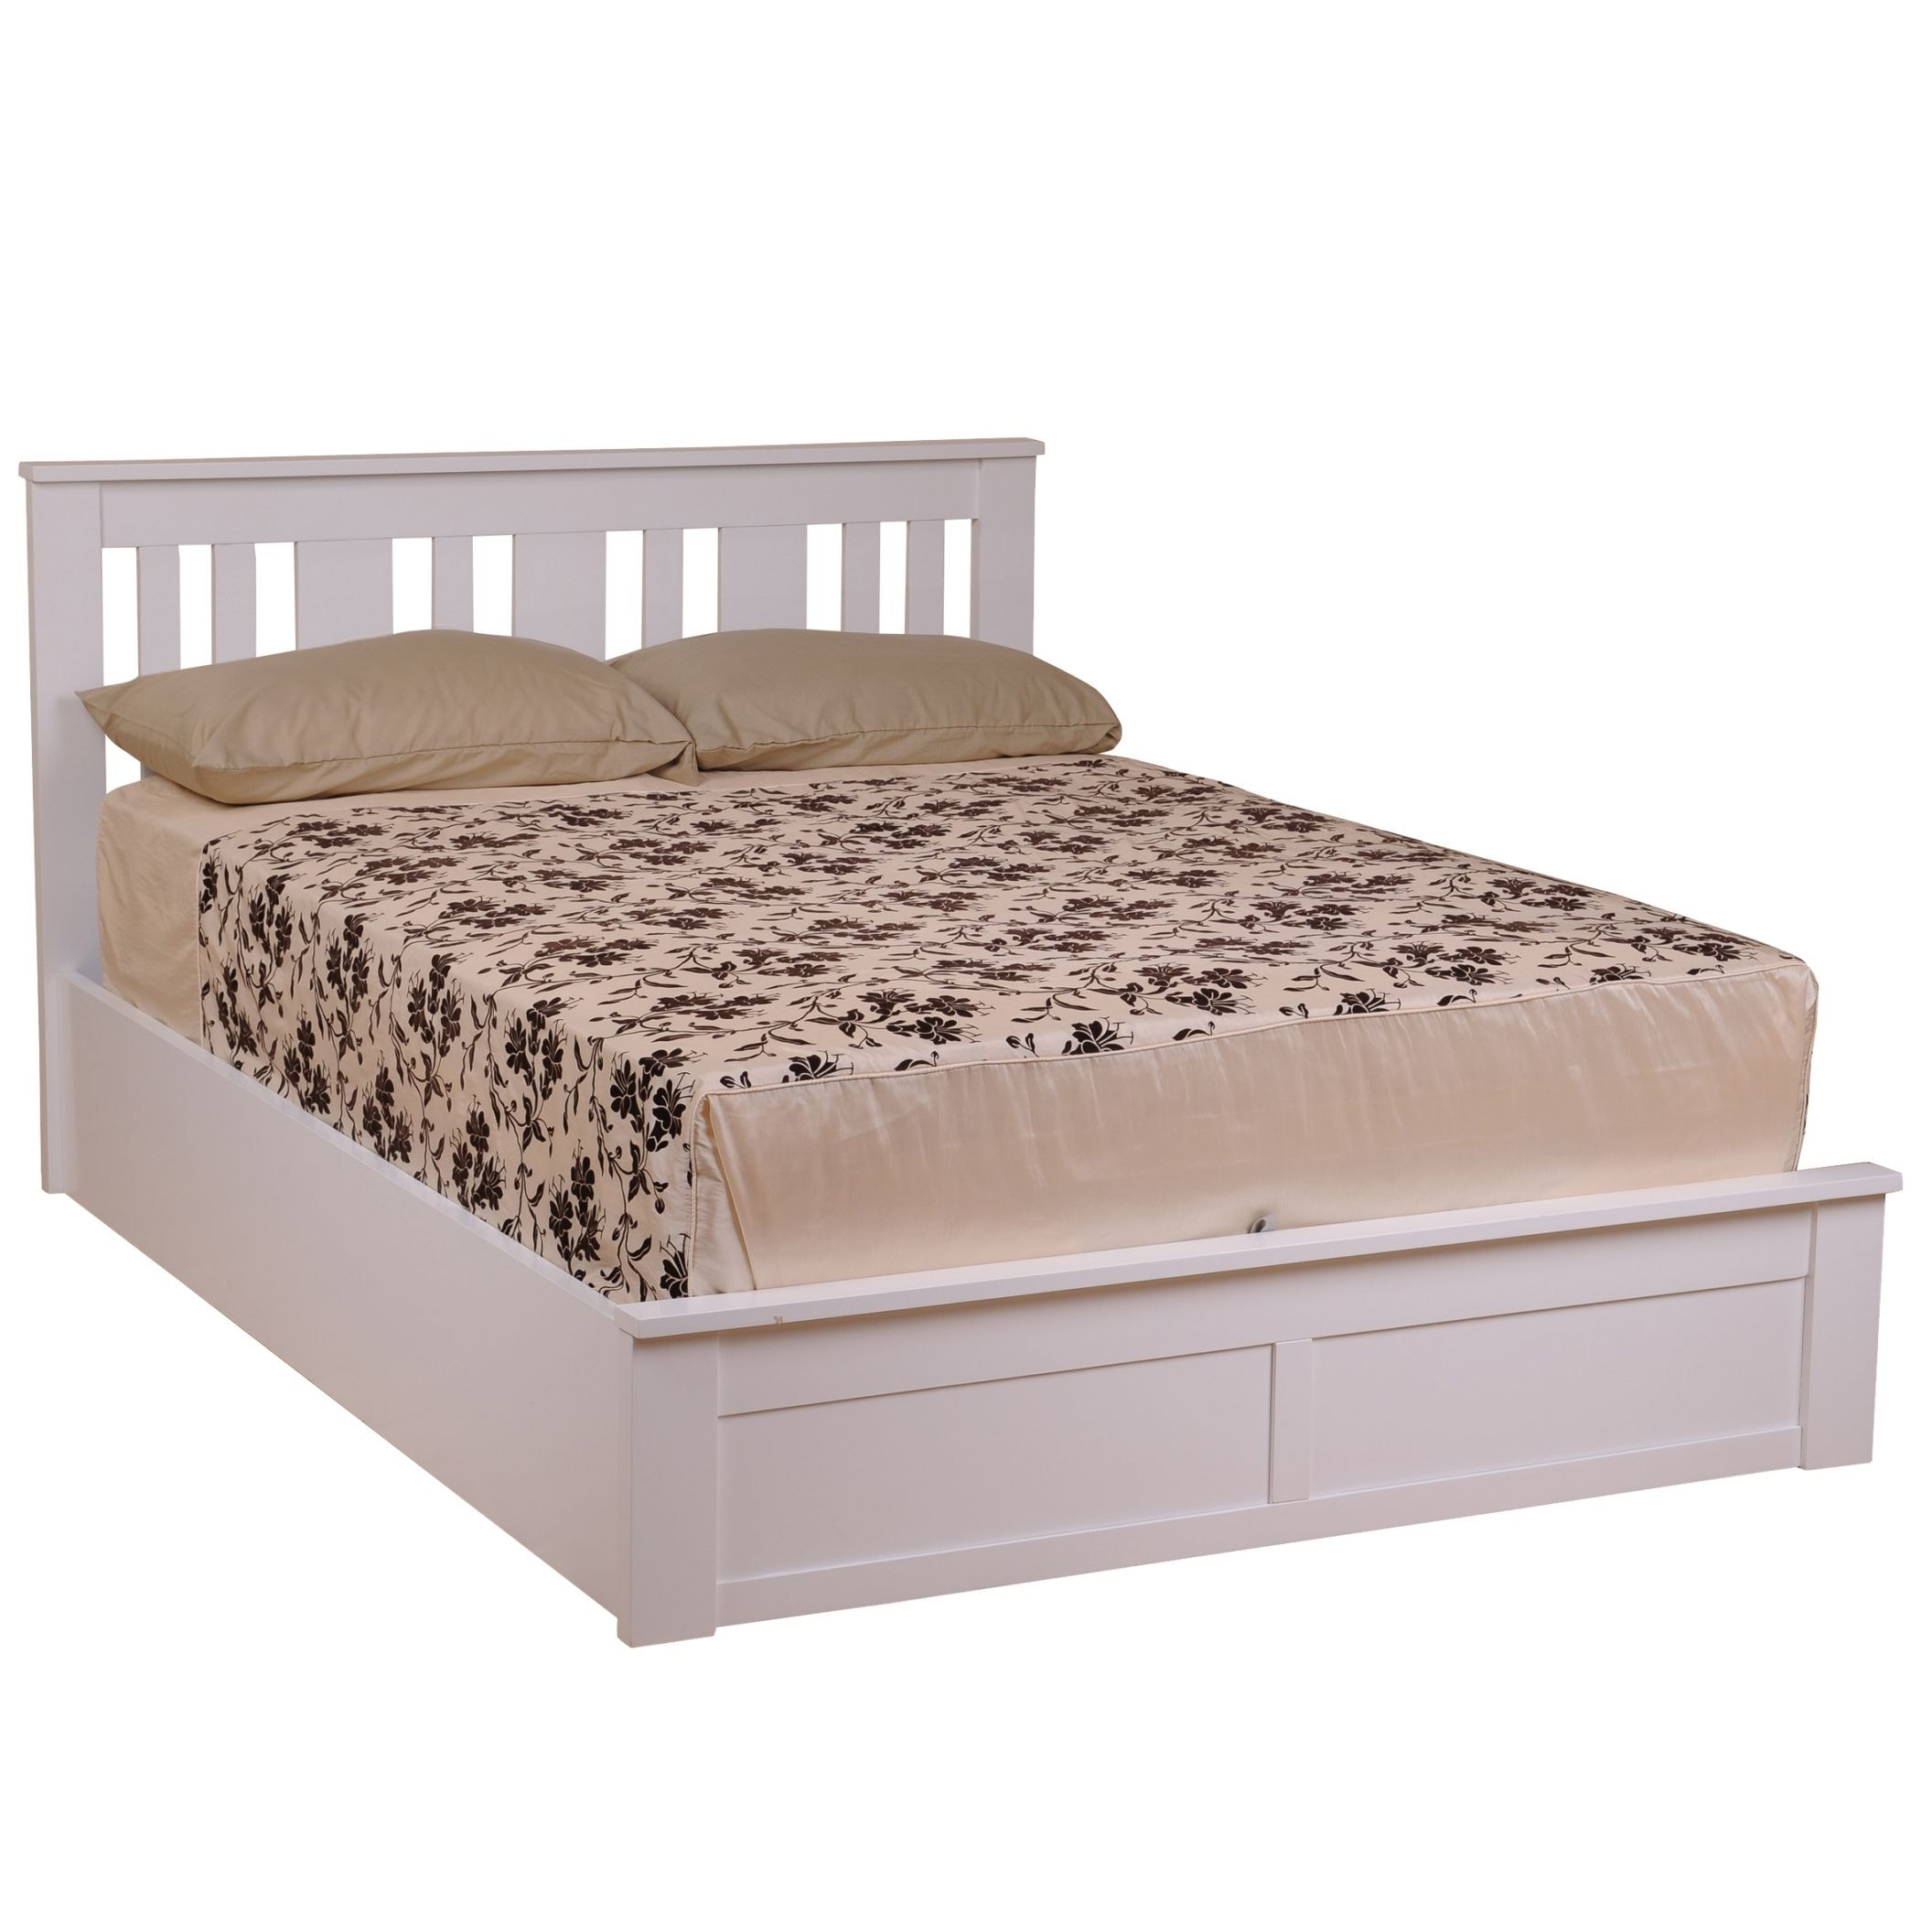 Excellent White Coliseum Wooden Ottoman Bed Cjindustries Chair Design For Home Cjindustriesco